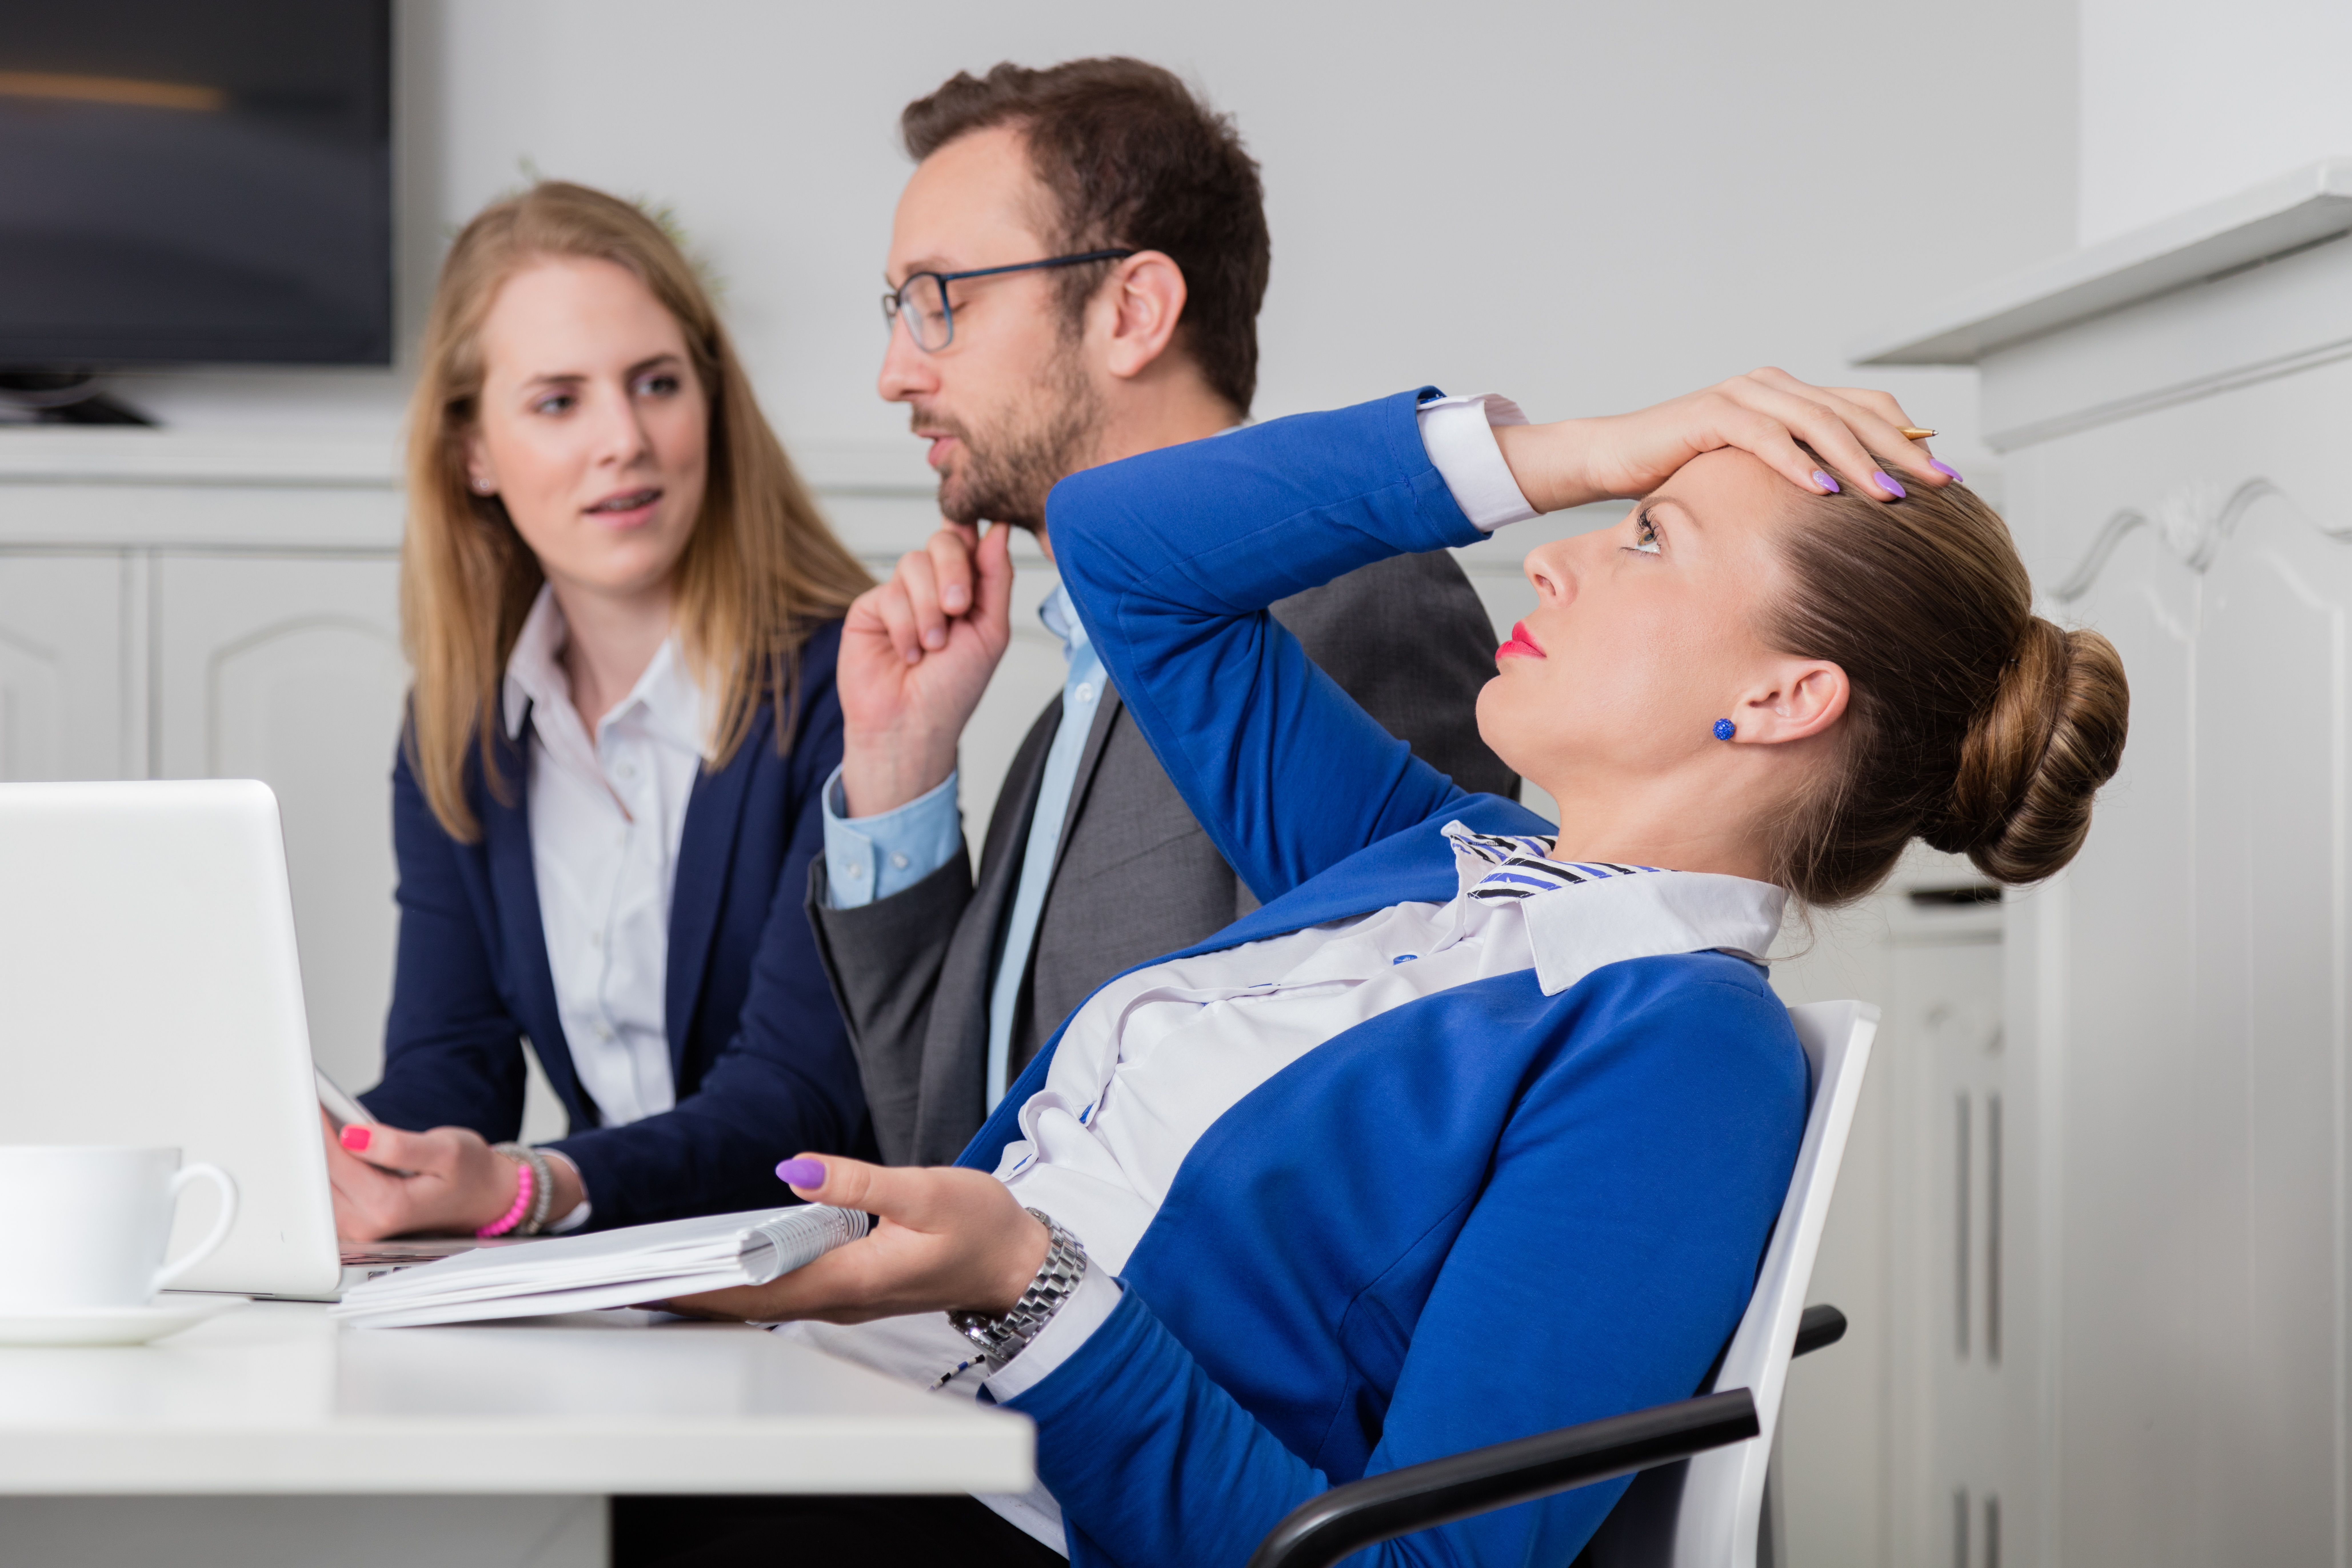 How to Kill Workplace Drama